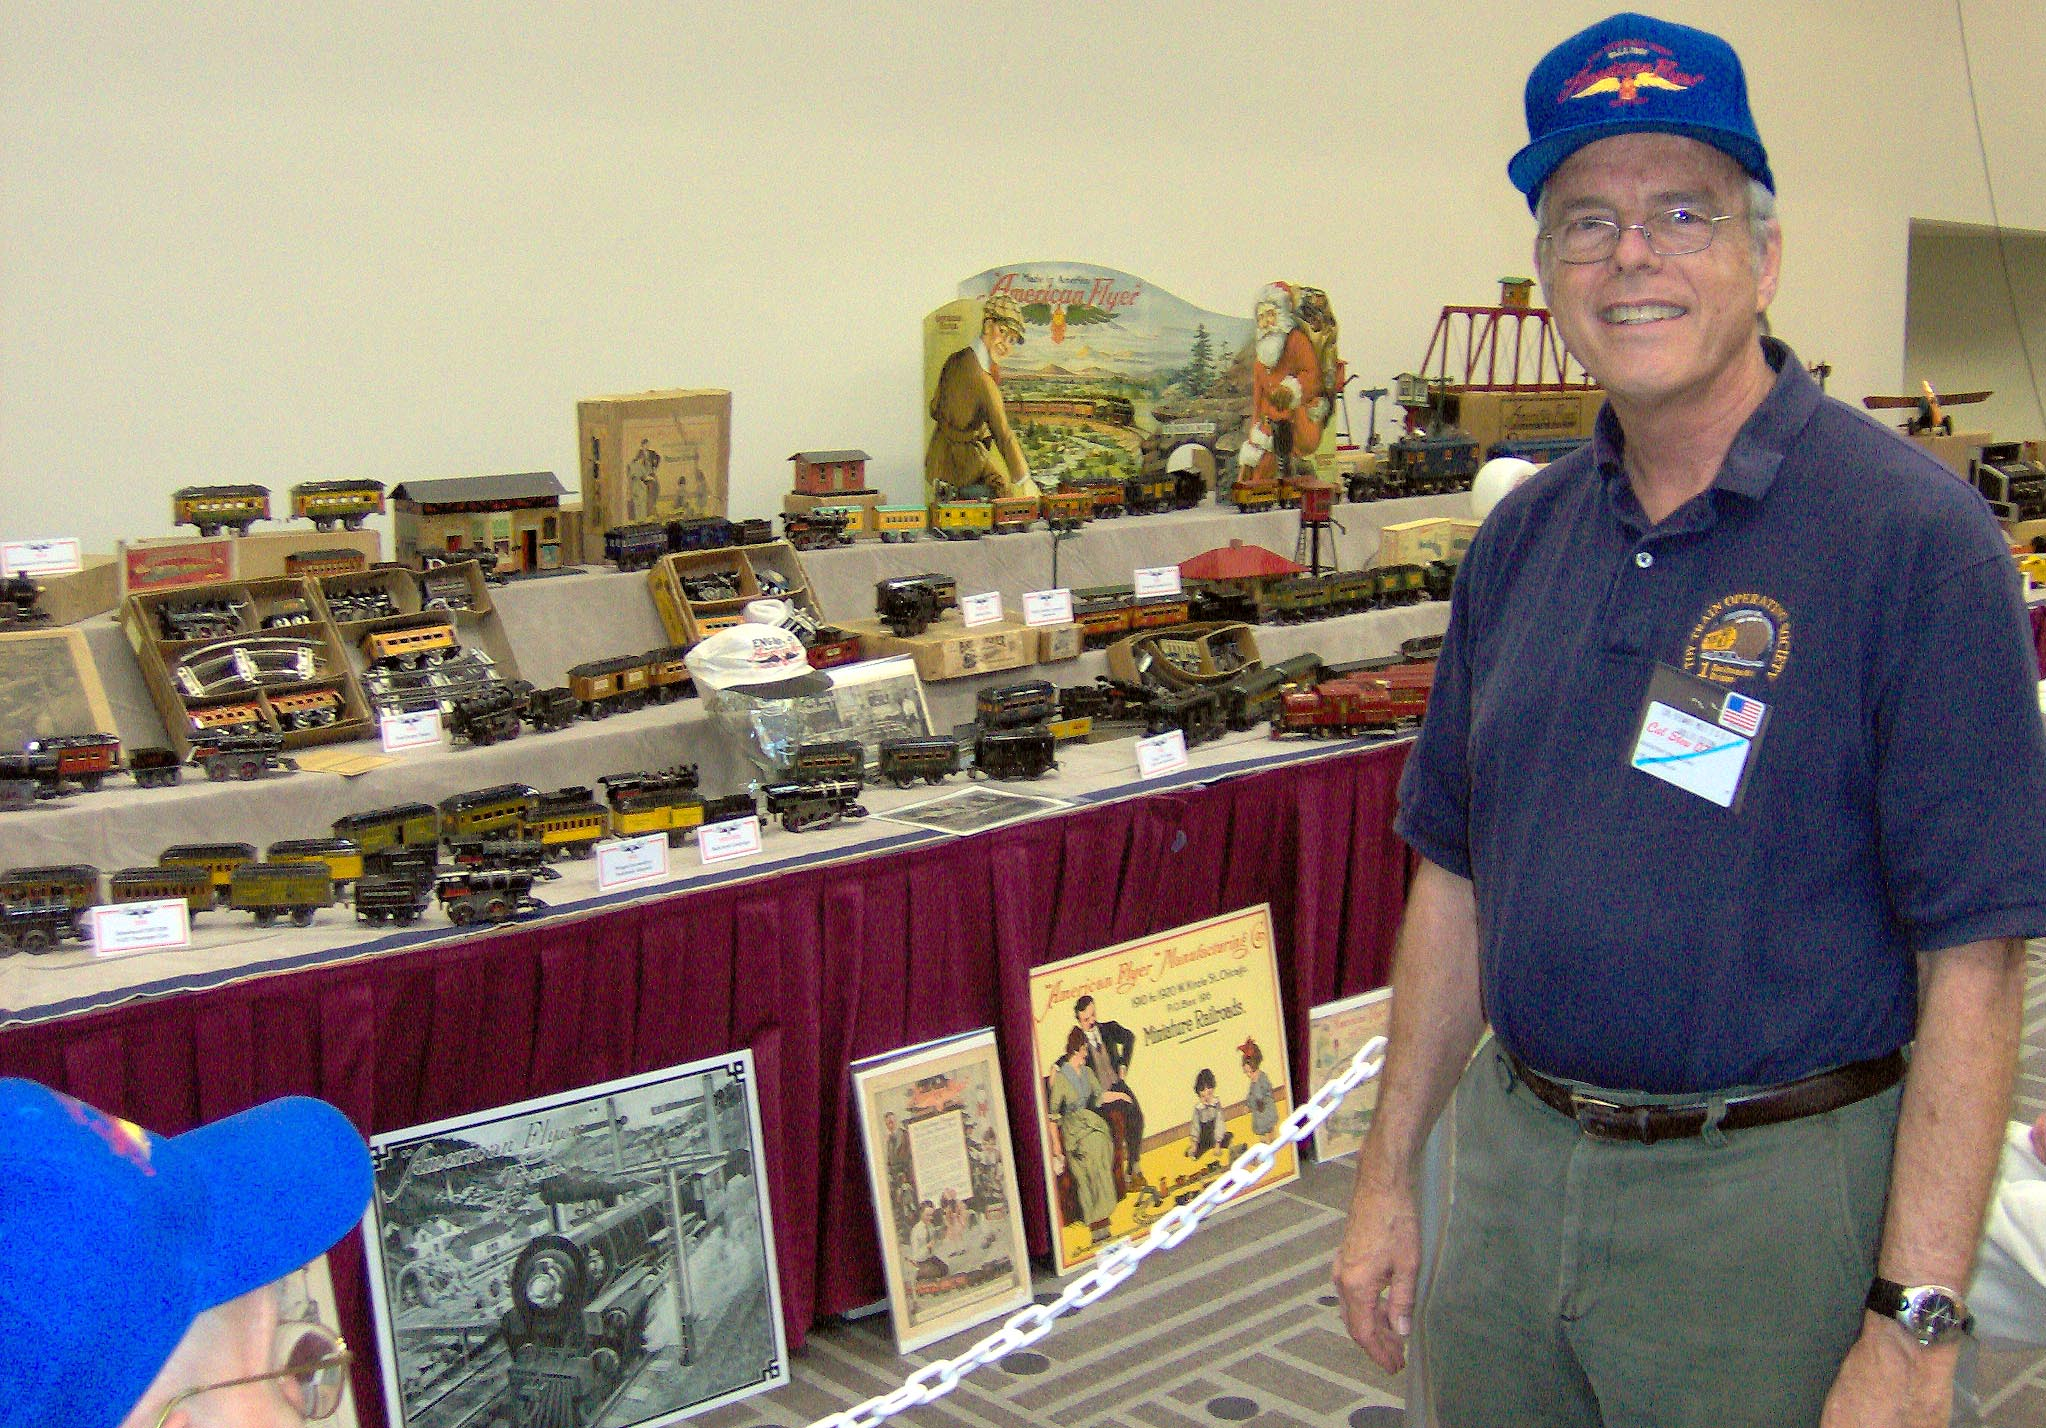 Hollis Cotton stands in front of the exquisite American Flyer Train Display